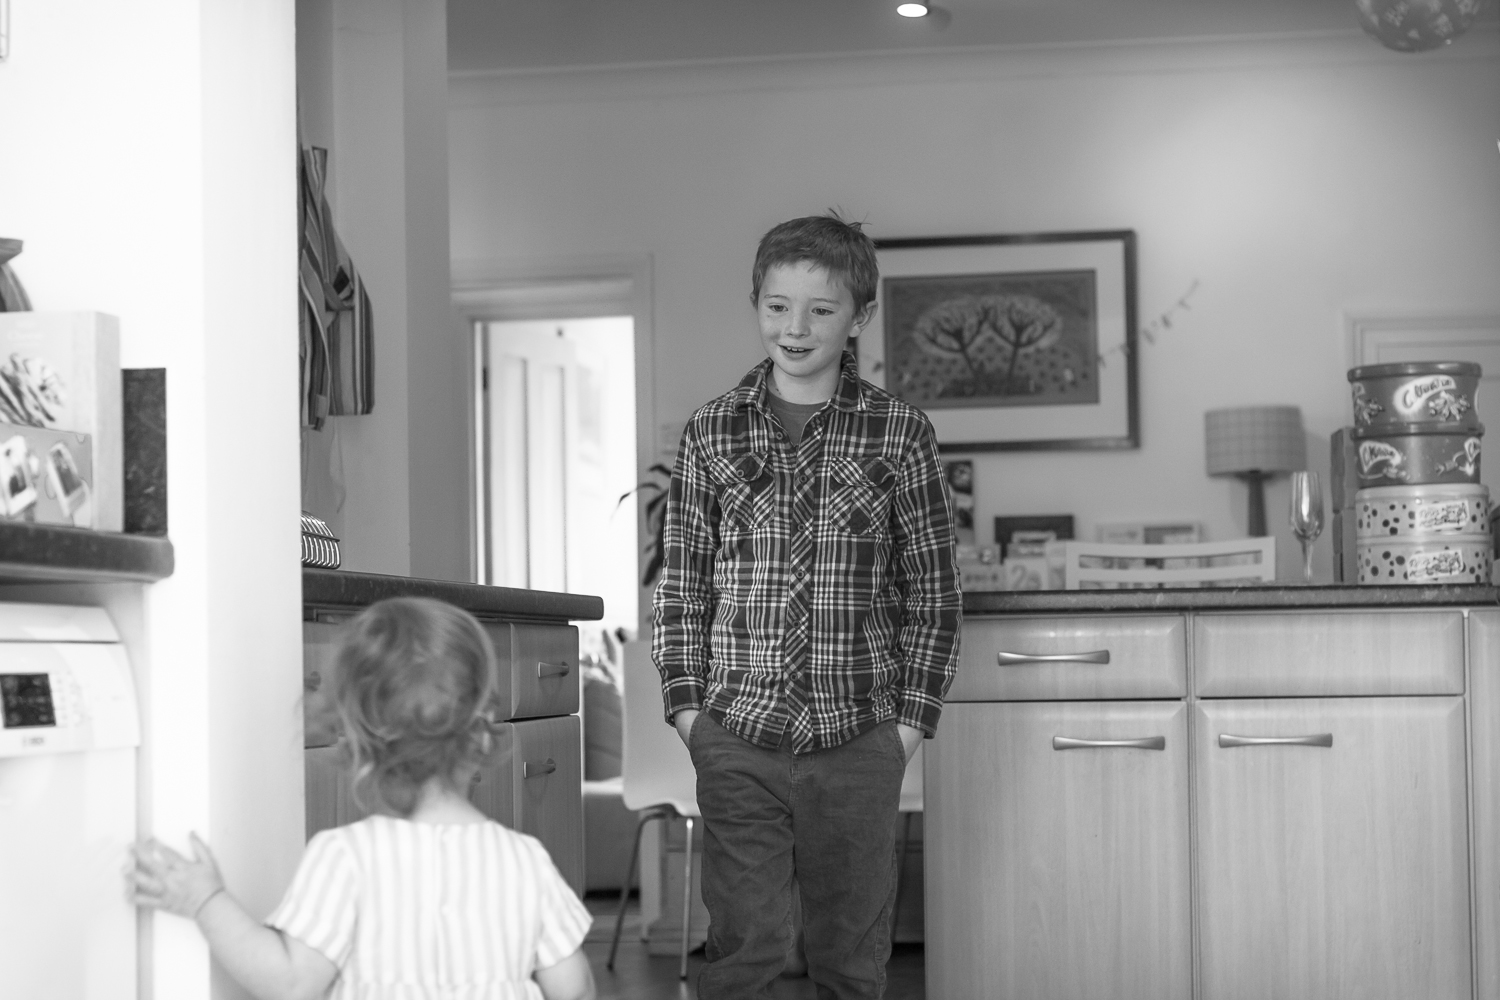 A two-year-olds 10-year-old uncle arrives at her party - they stand in the kitchen looking at eachother